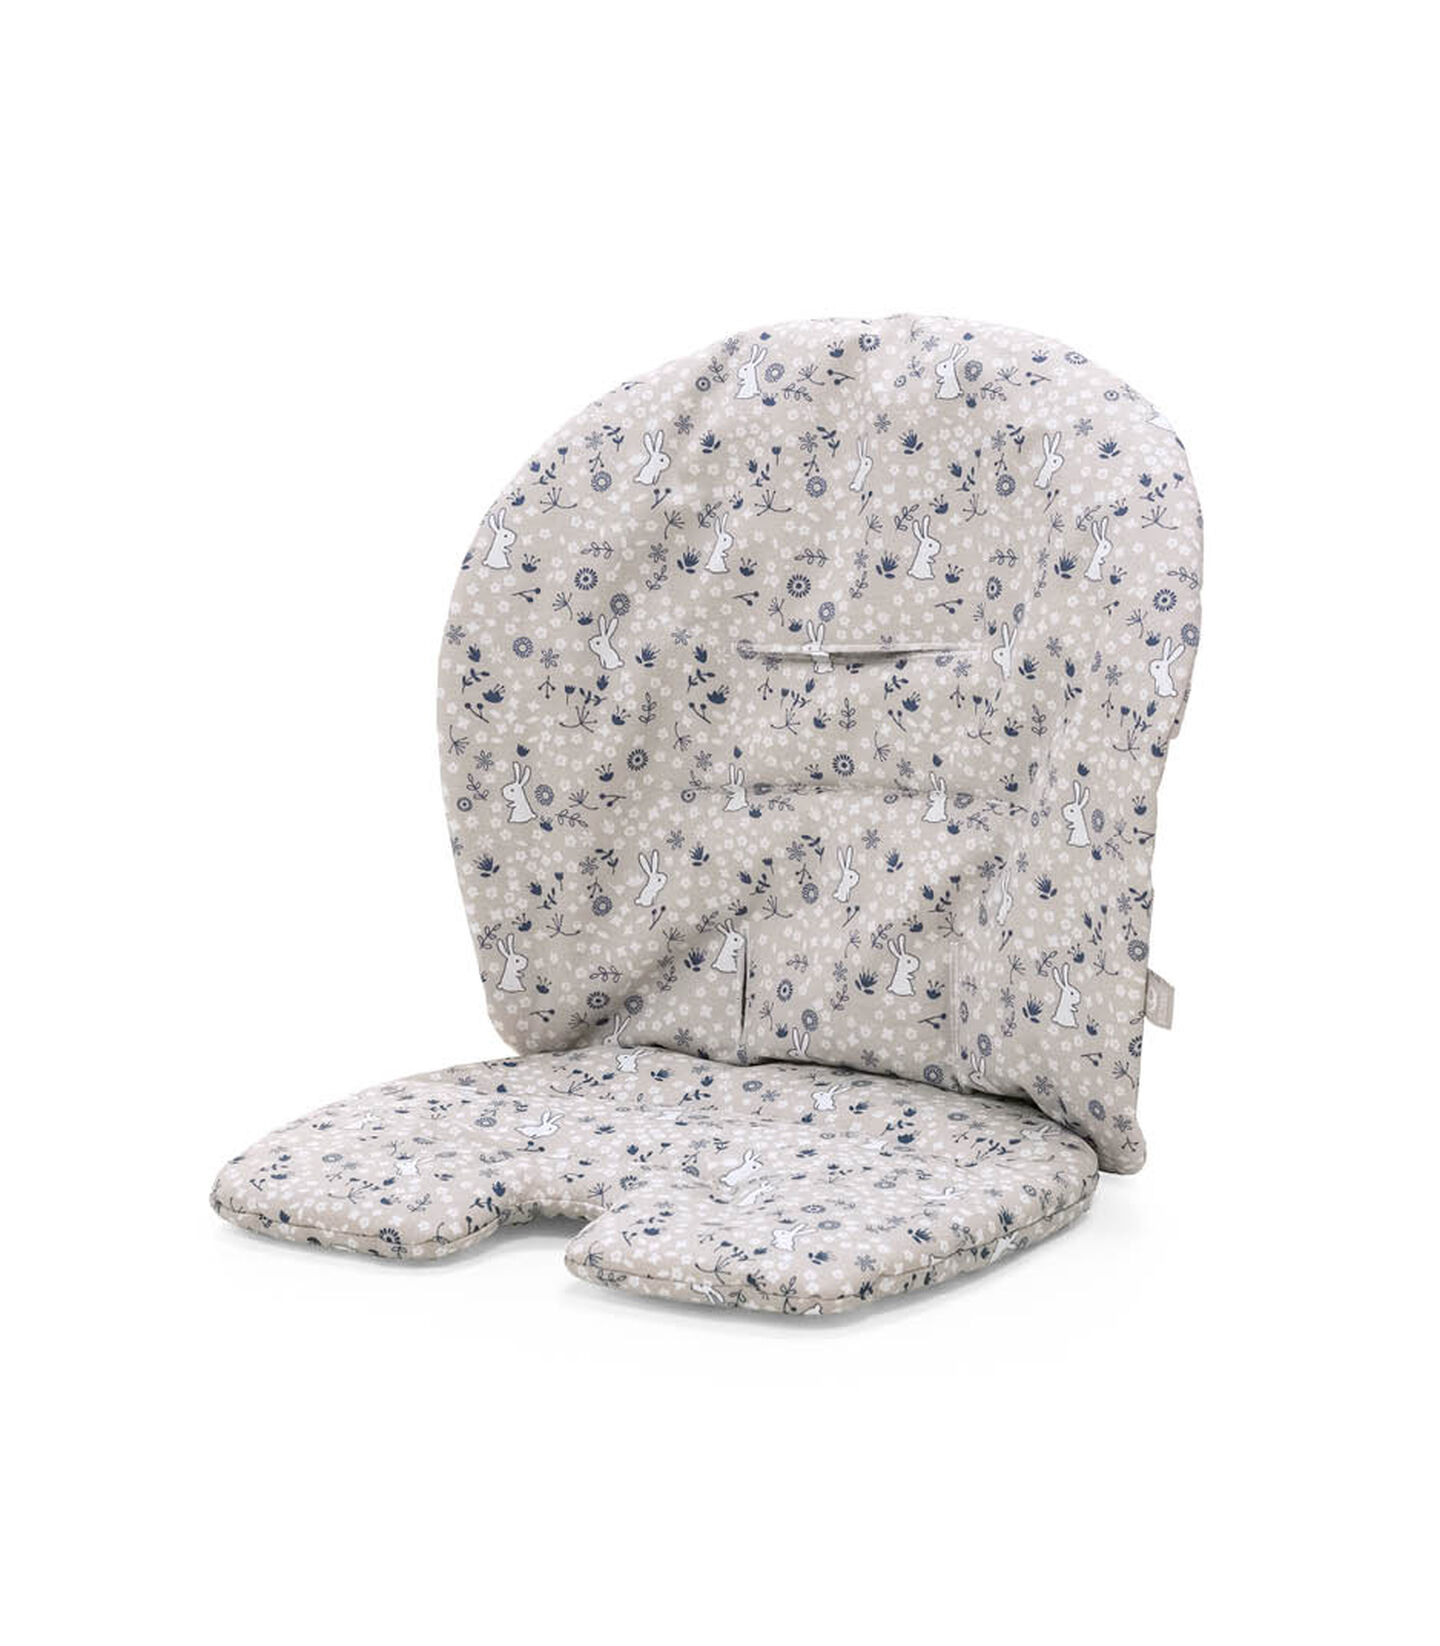 Stokke® Steps™ Baby Set Cushion Garden Bunny, Garden Bunny, mainview view 2